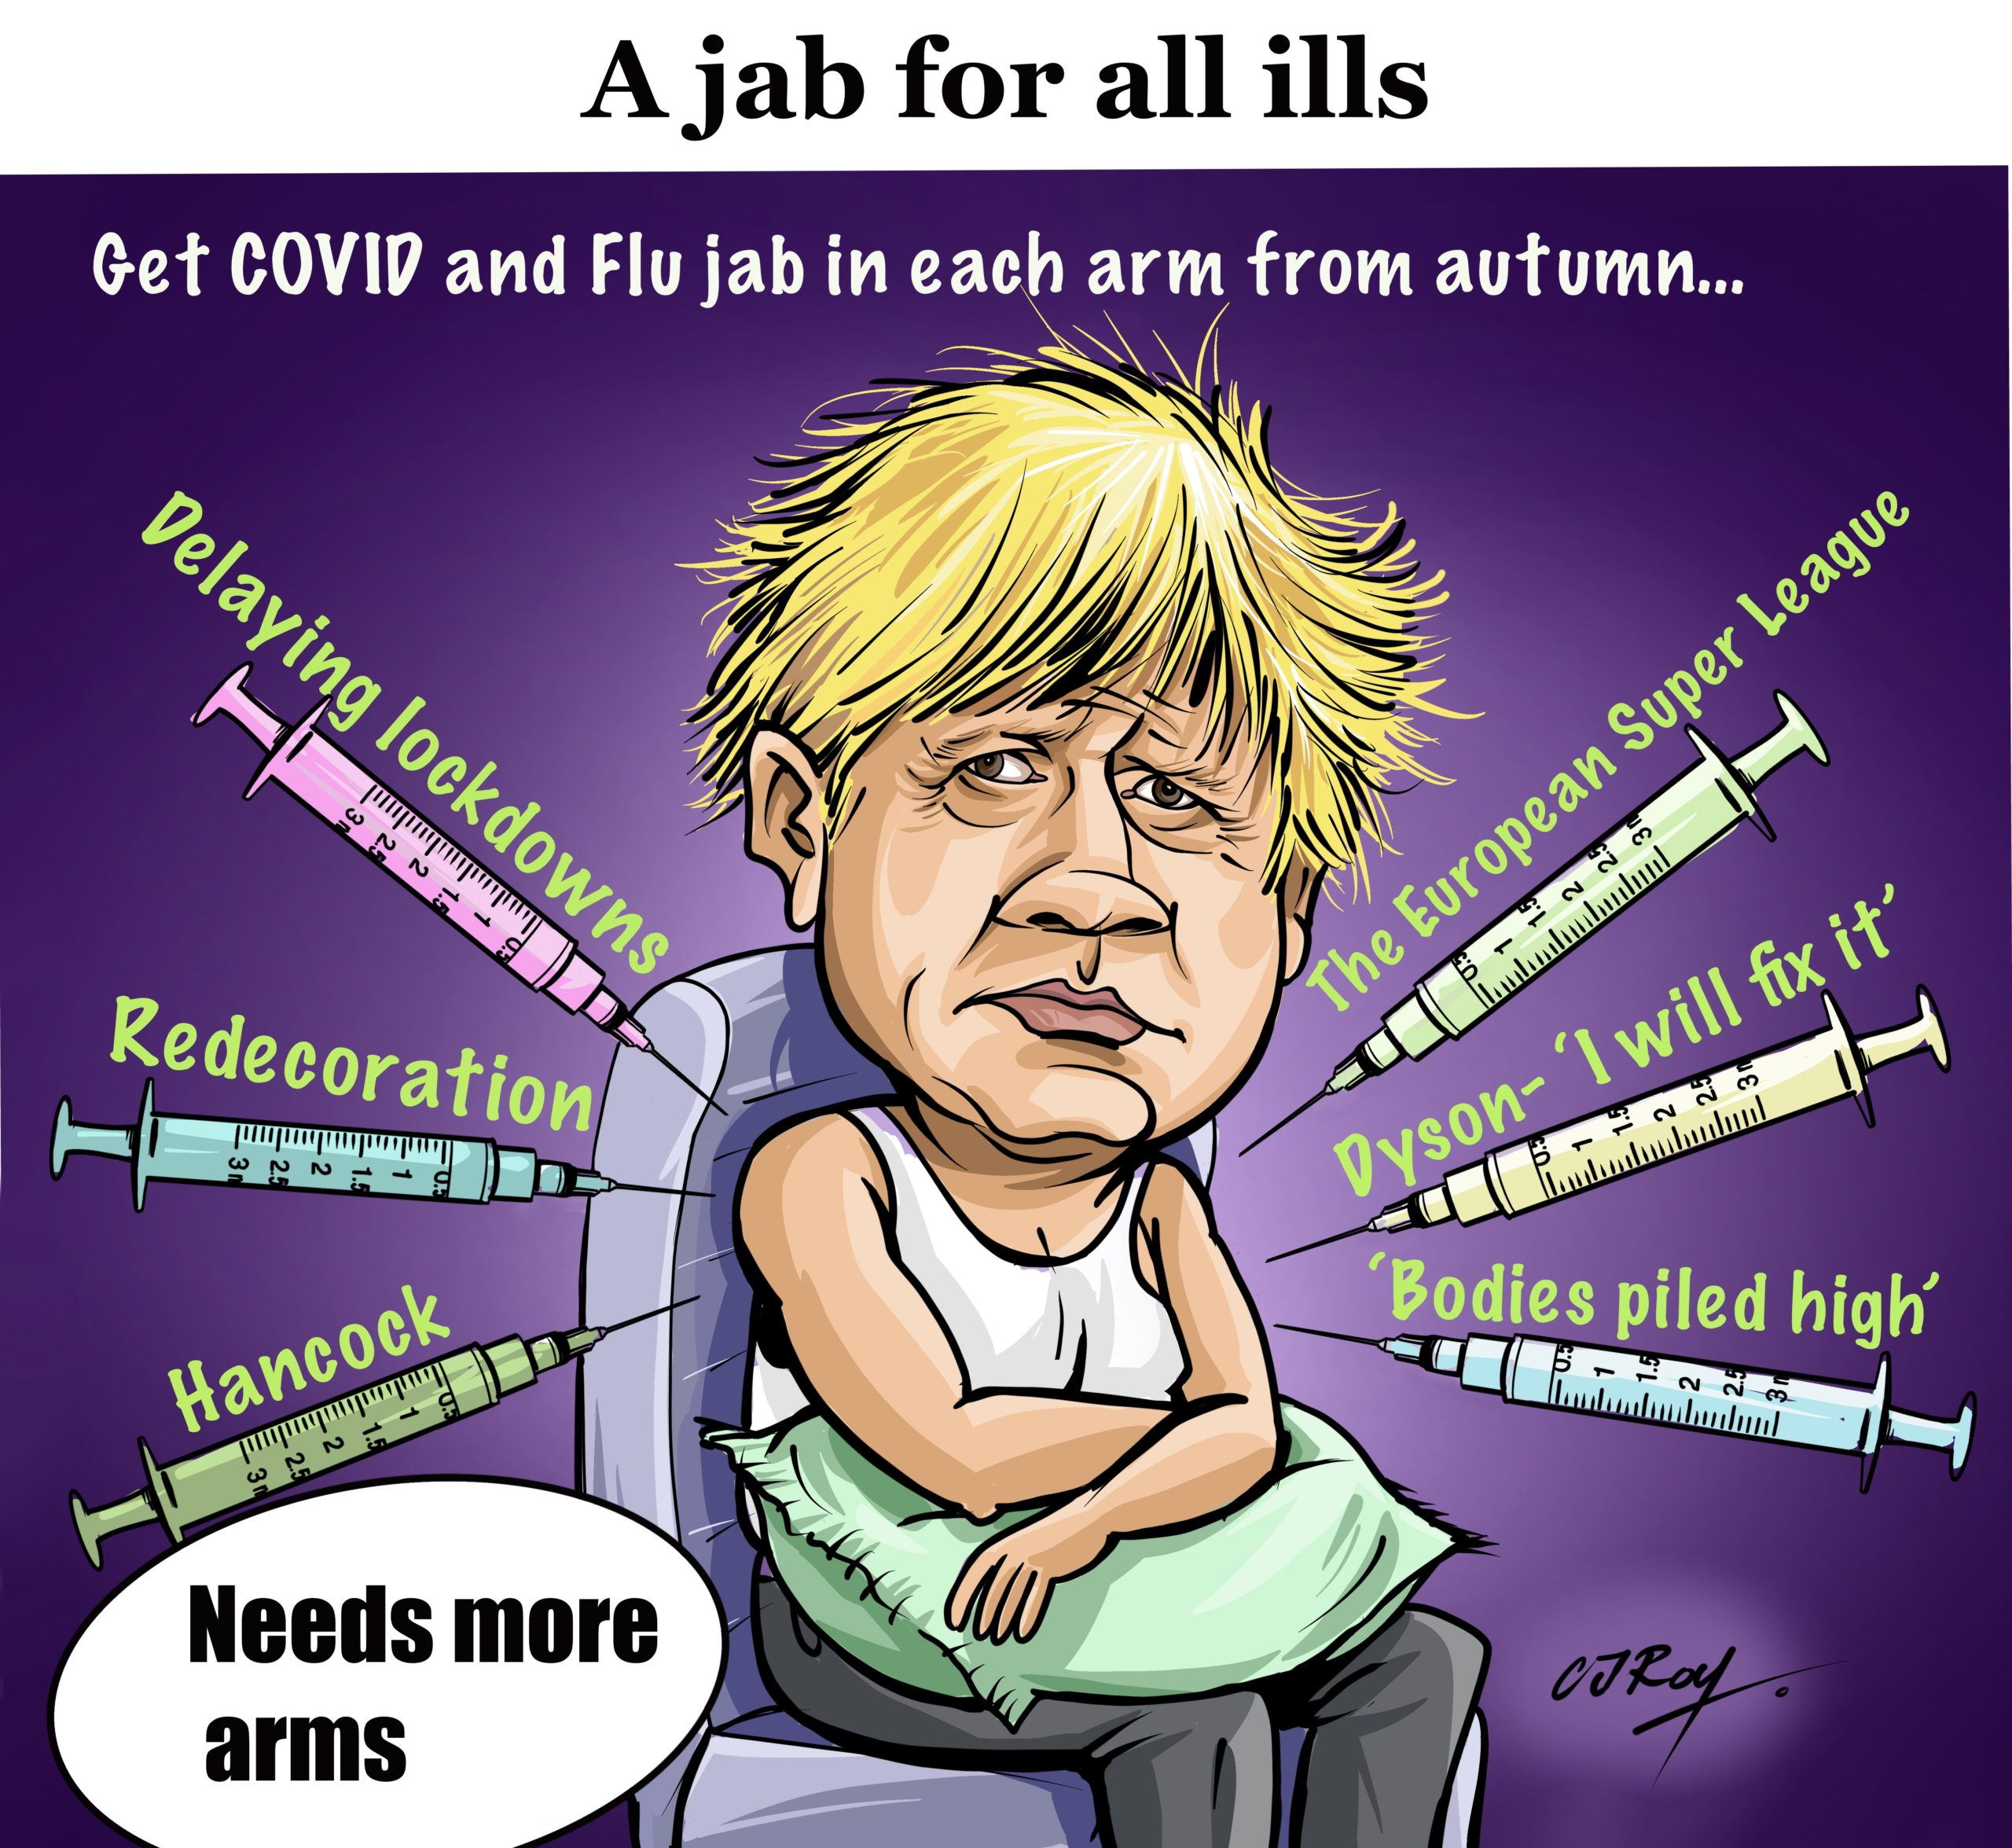 A Jab for all ills